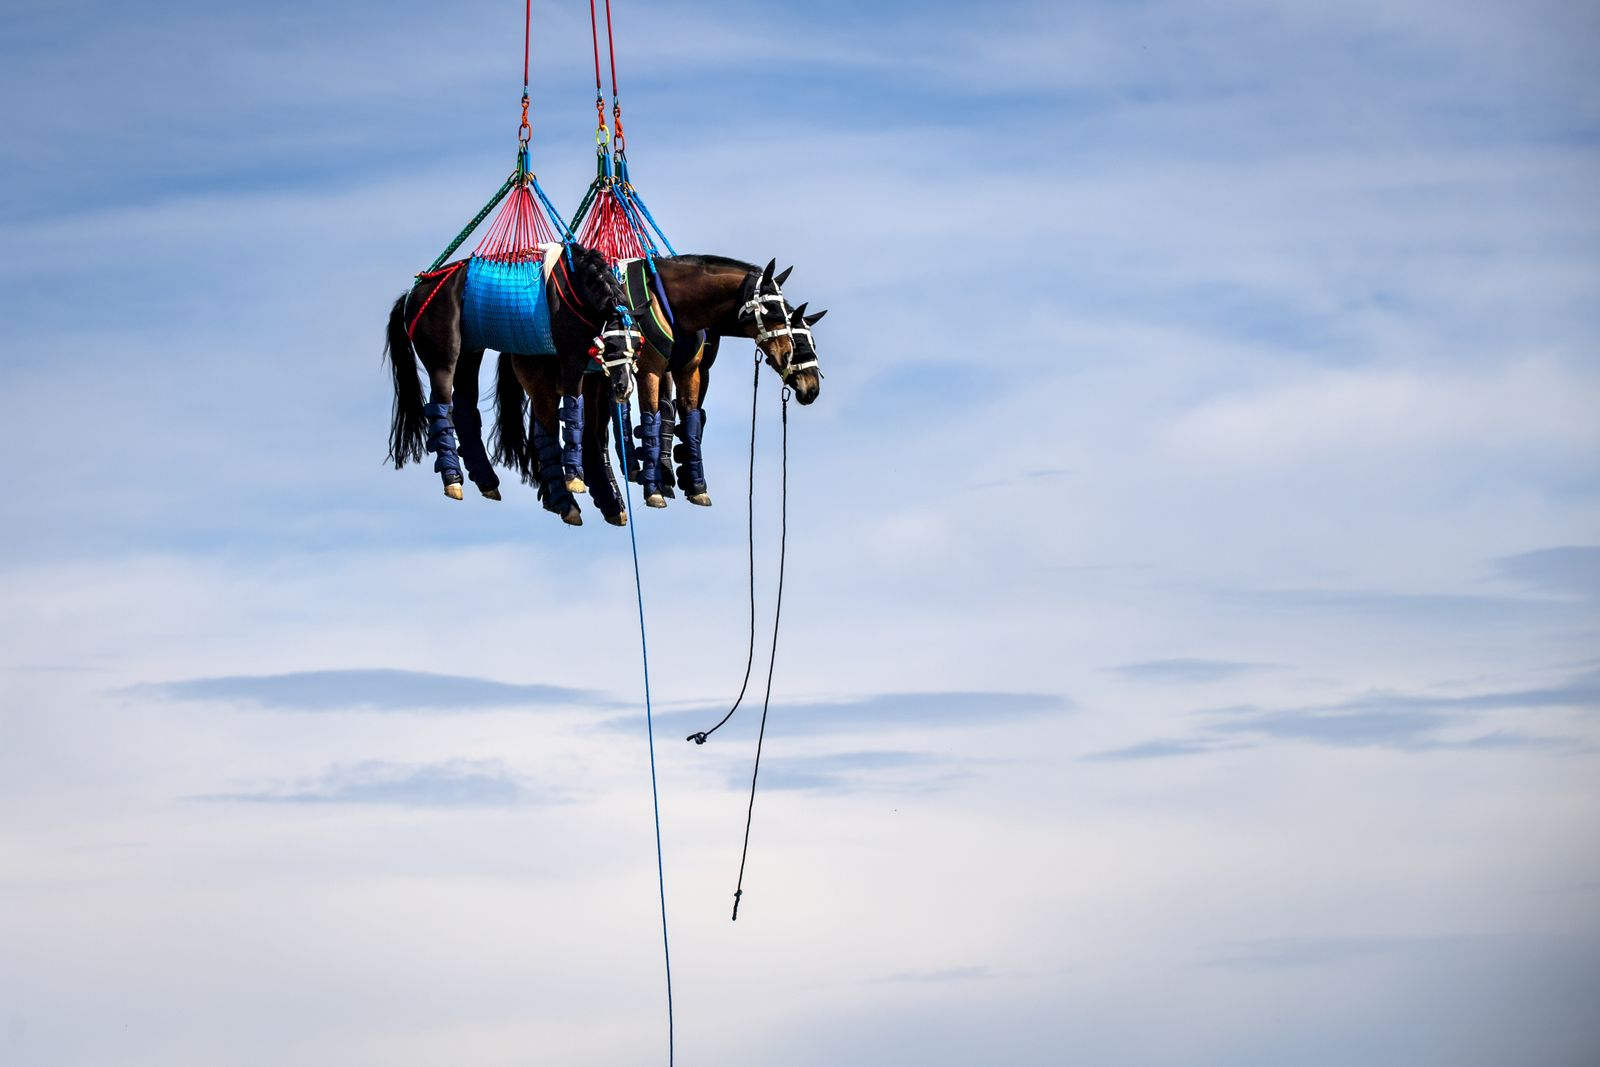 Horse-transporting by helicopter in Switzerland